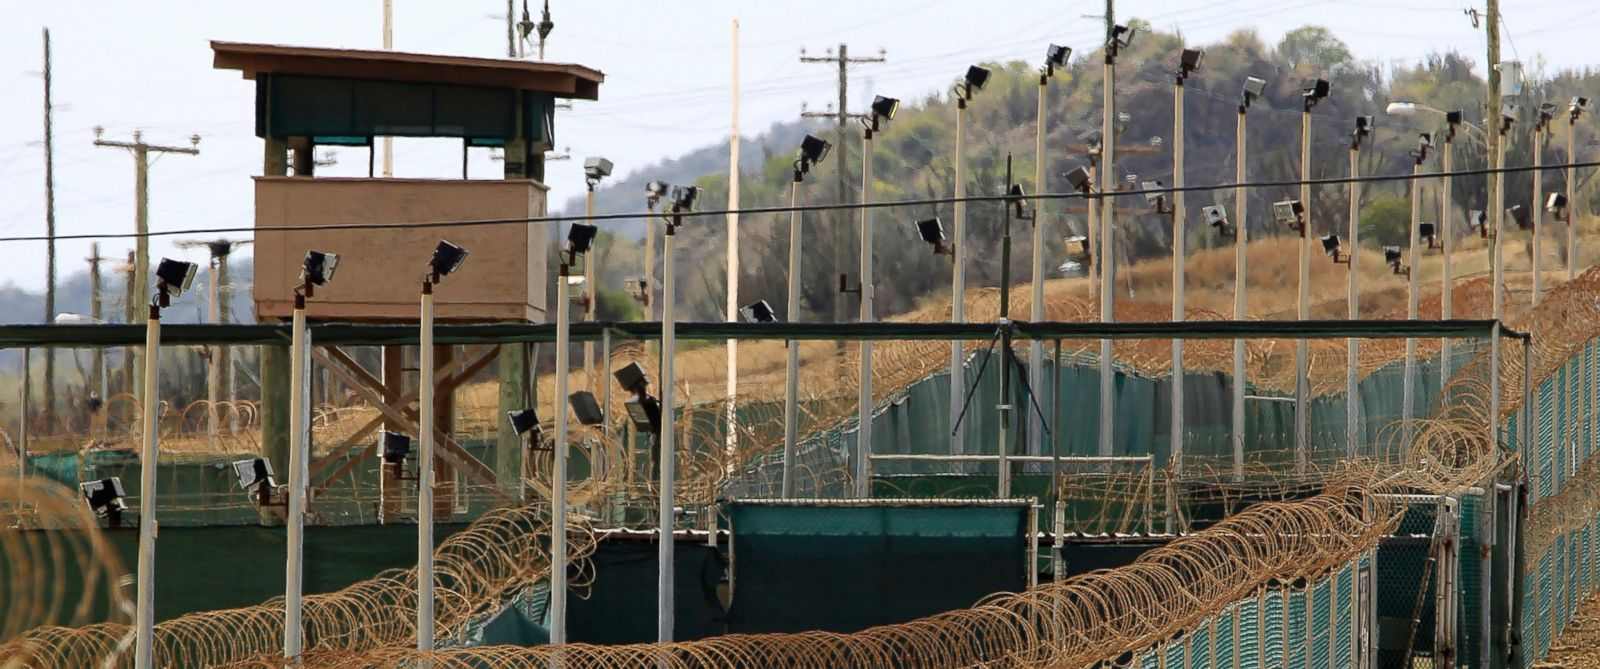 PHOTO: The exterior of Camp Delta is seen at the U.S. Naval Base at Guantanamo Bay, March 6, 2013.